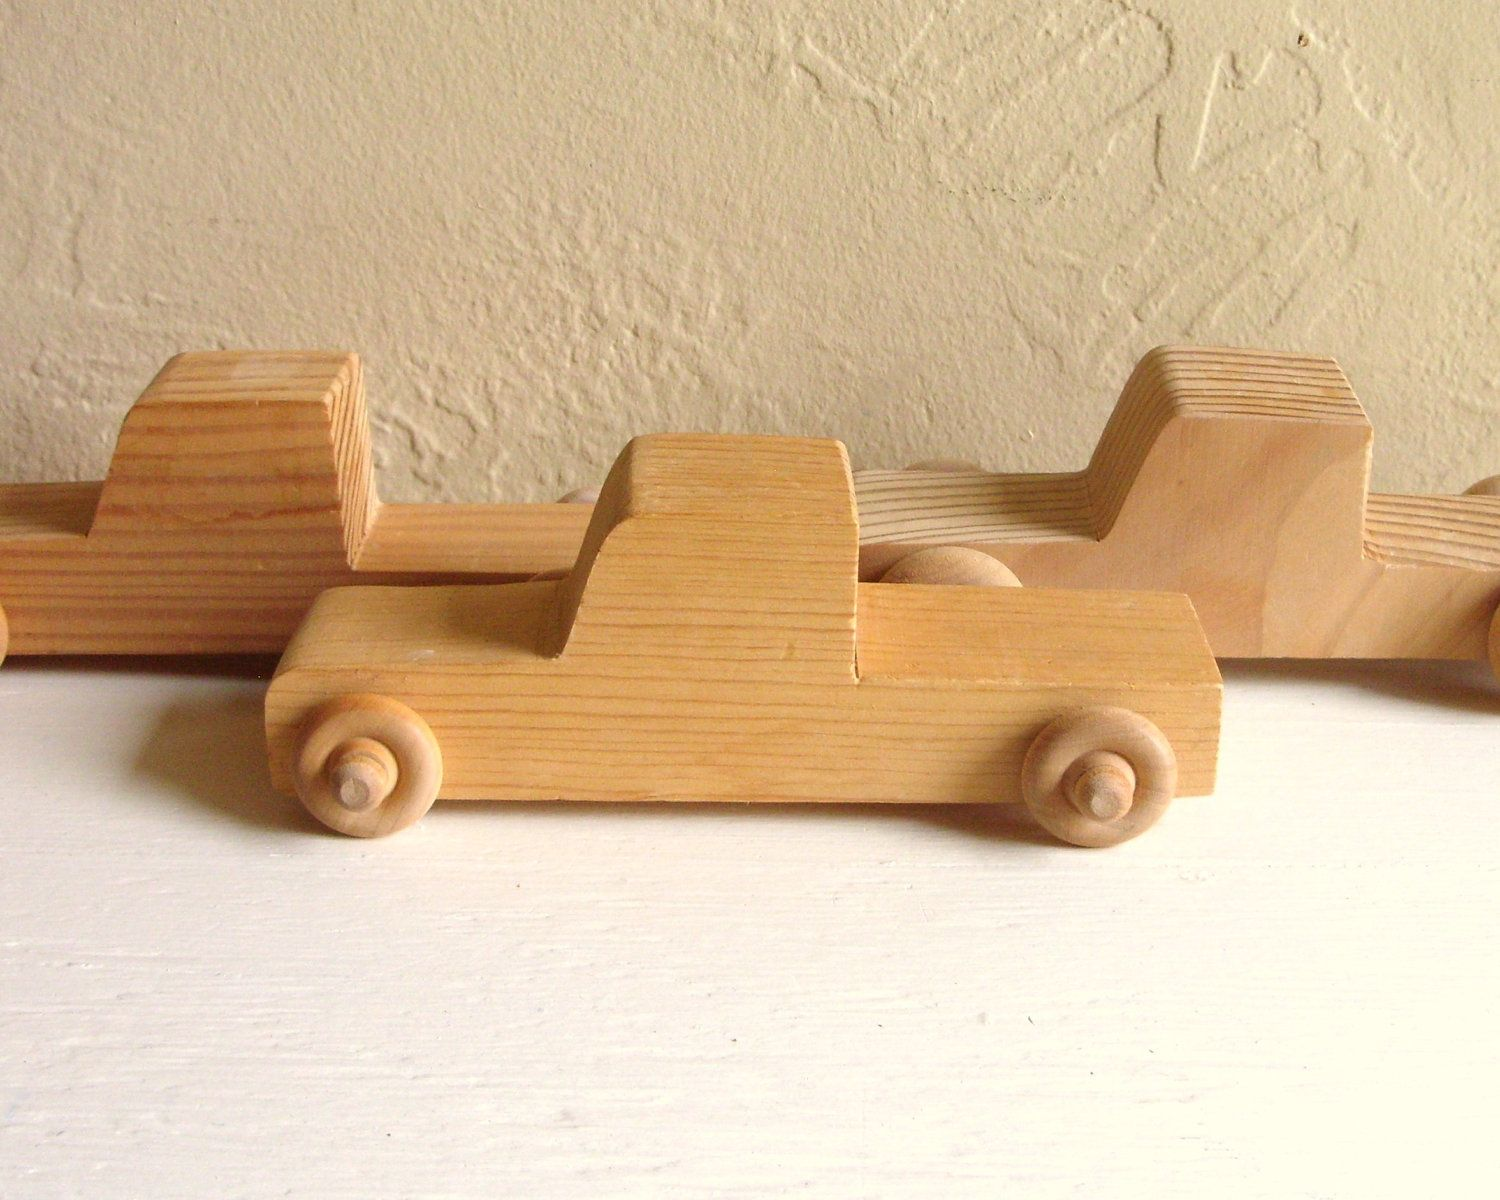 unfinished wooden toys | Unfinished Wood Trucks Wooden Toy Pick-up ...